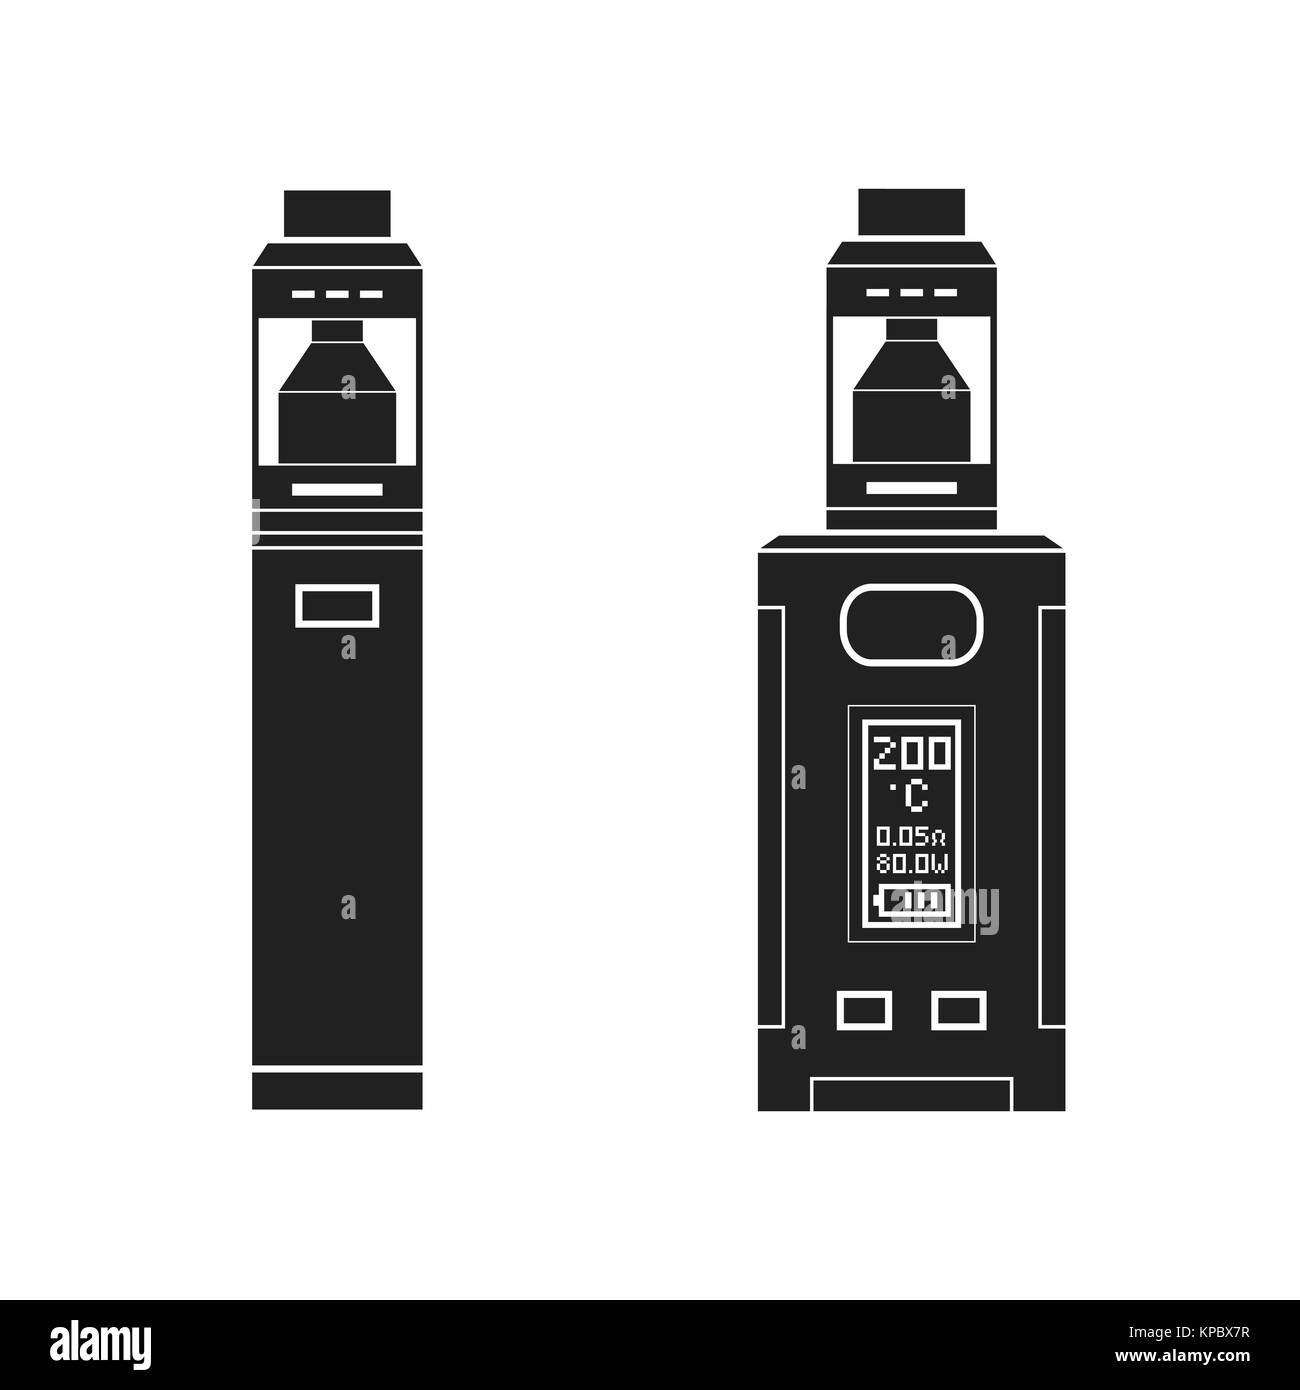 vector black monochrome solid illustrations various types vaporizer mechanical and box mods illustrations isolated - Stock Image